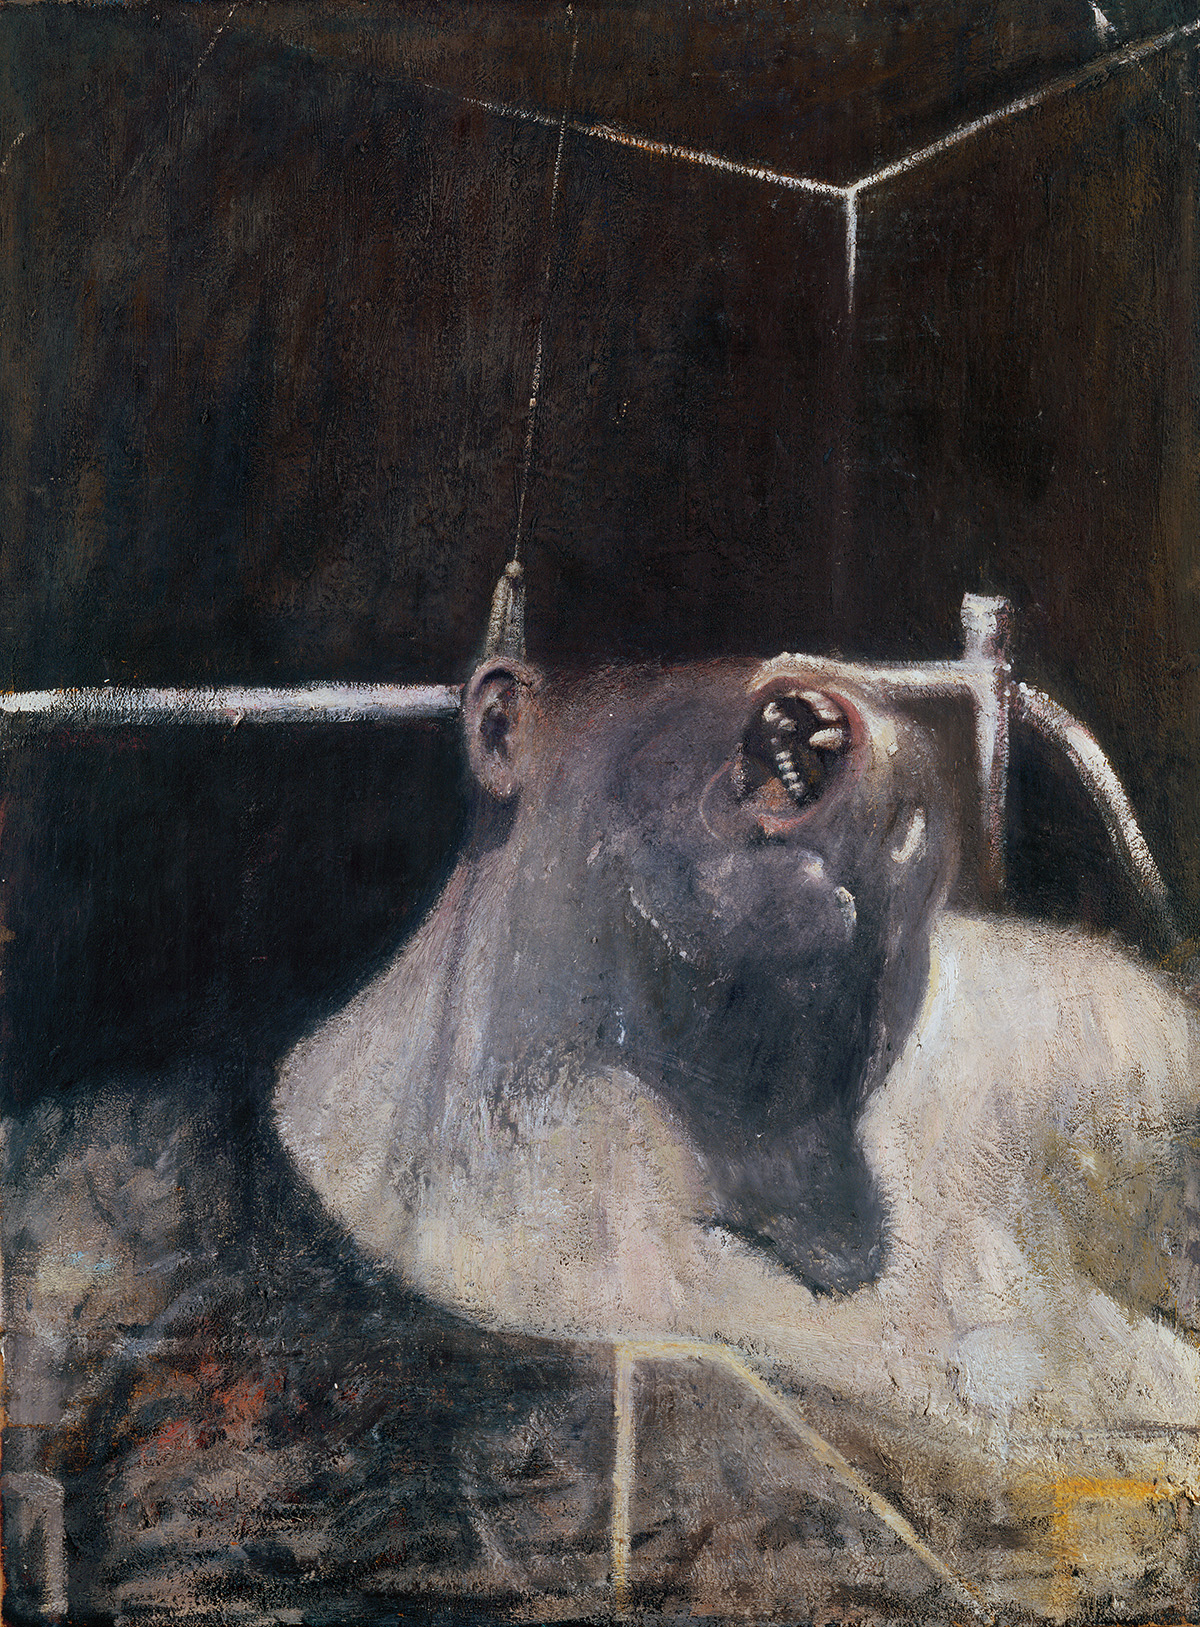 Francis Bacon, Head I, 1948. Oil and tempera on hardboard. CR number 48-01. © The Estate of Francis Bacon / DACS London 2019. All rights reserved.